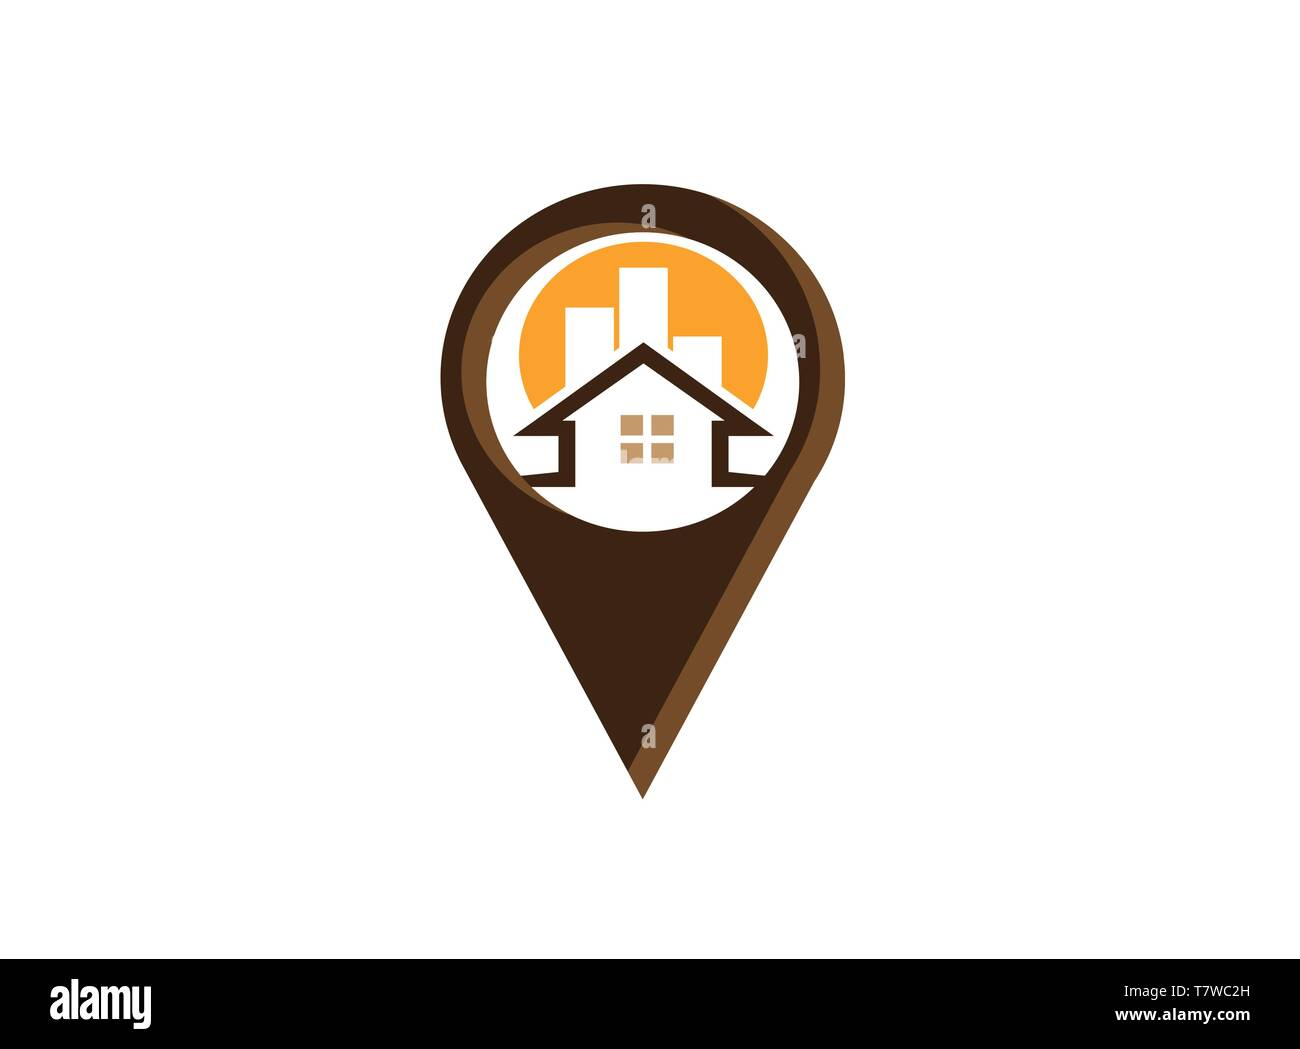 Compass with Indicators dart board in a pin symbol for logo design illustration, home icon, town and city symbol - Stock Vector